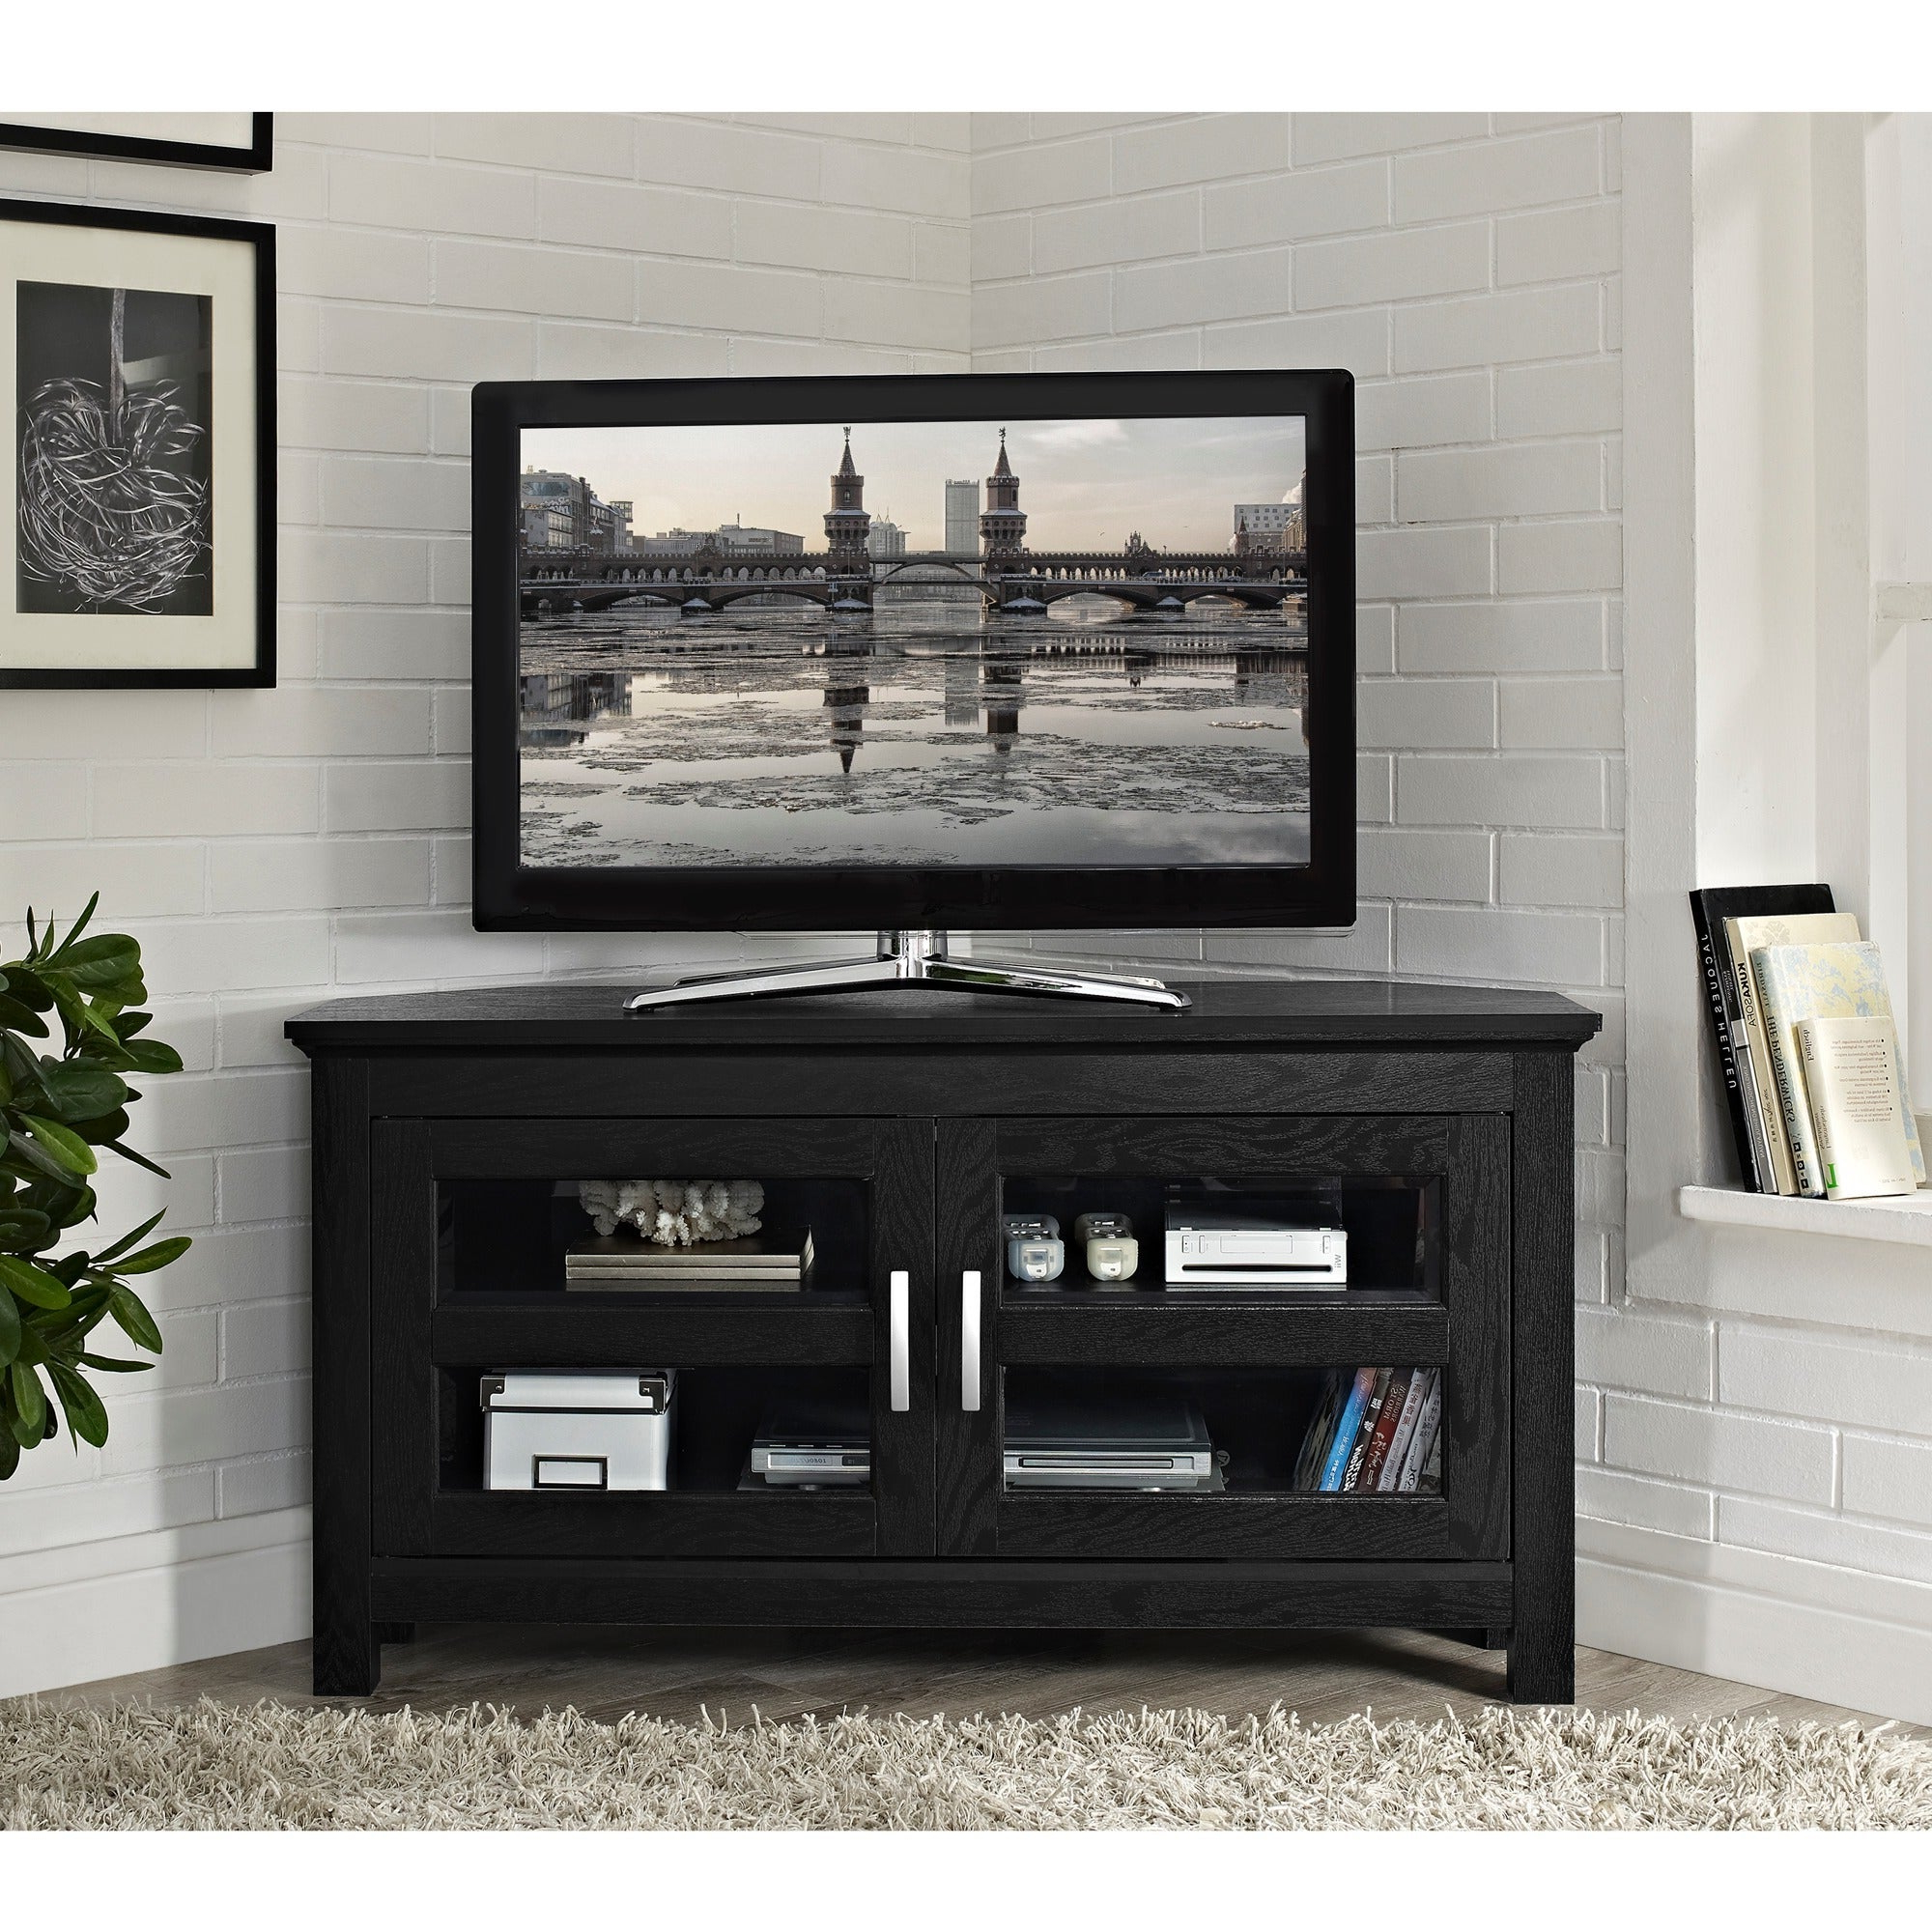 Fashionable Black Wood 44 Inch Corner Tv Stand – Overstock Shopping Pertaining To Dillon Black Tv Unit Stands (View 7 of 10)